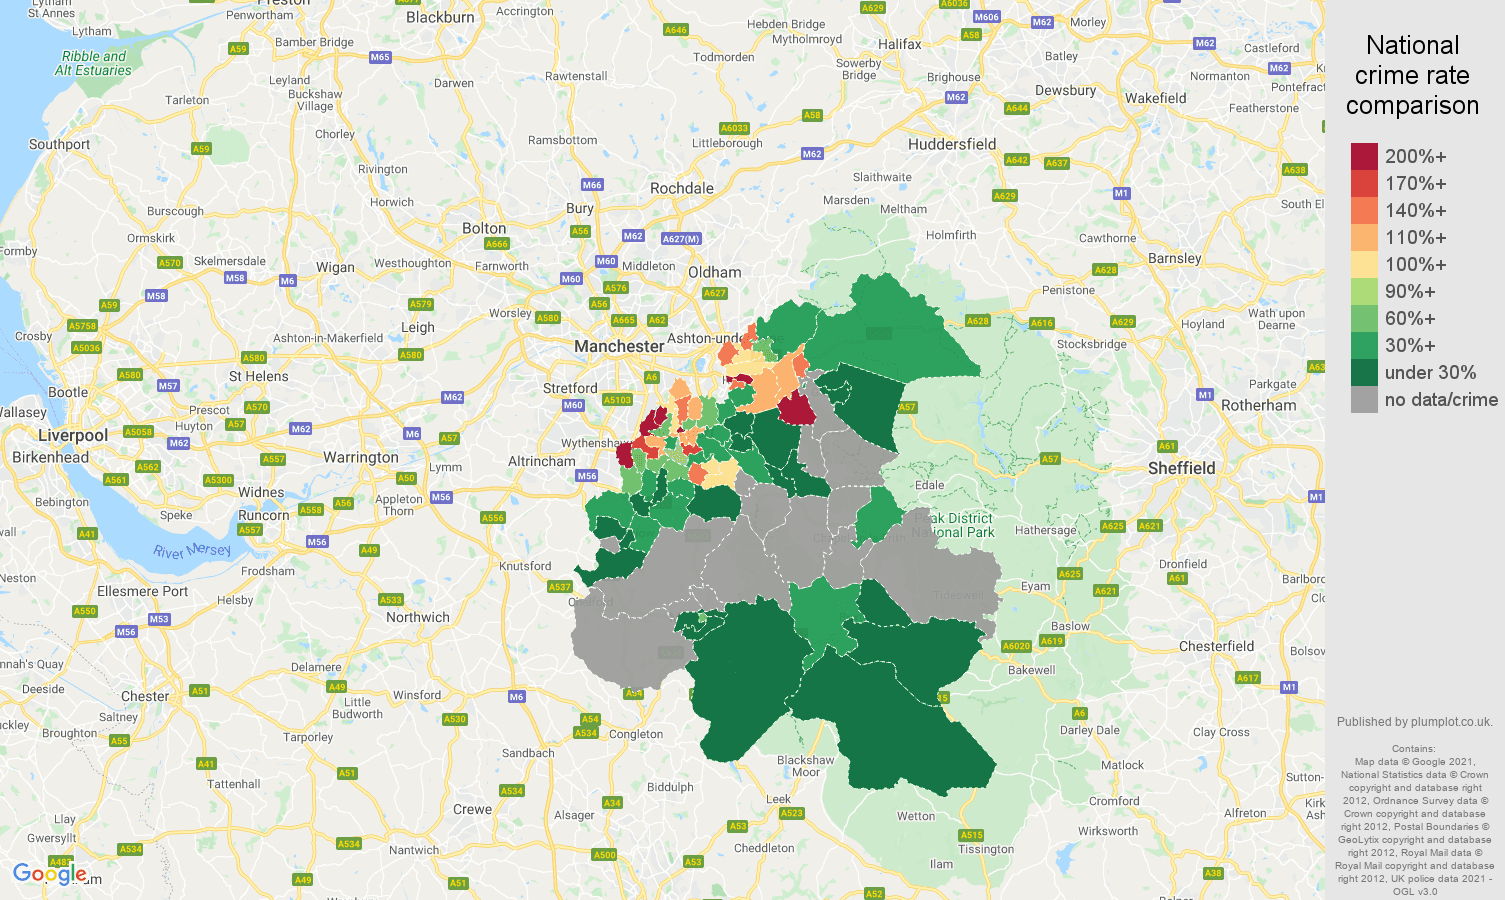 Stockport robbery crime rate comparison map